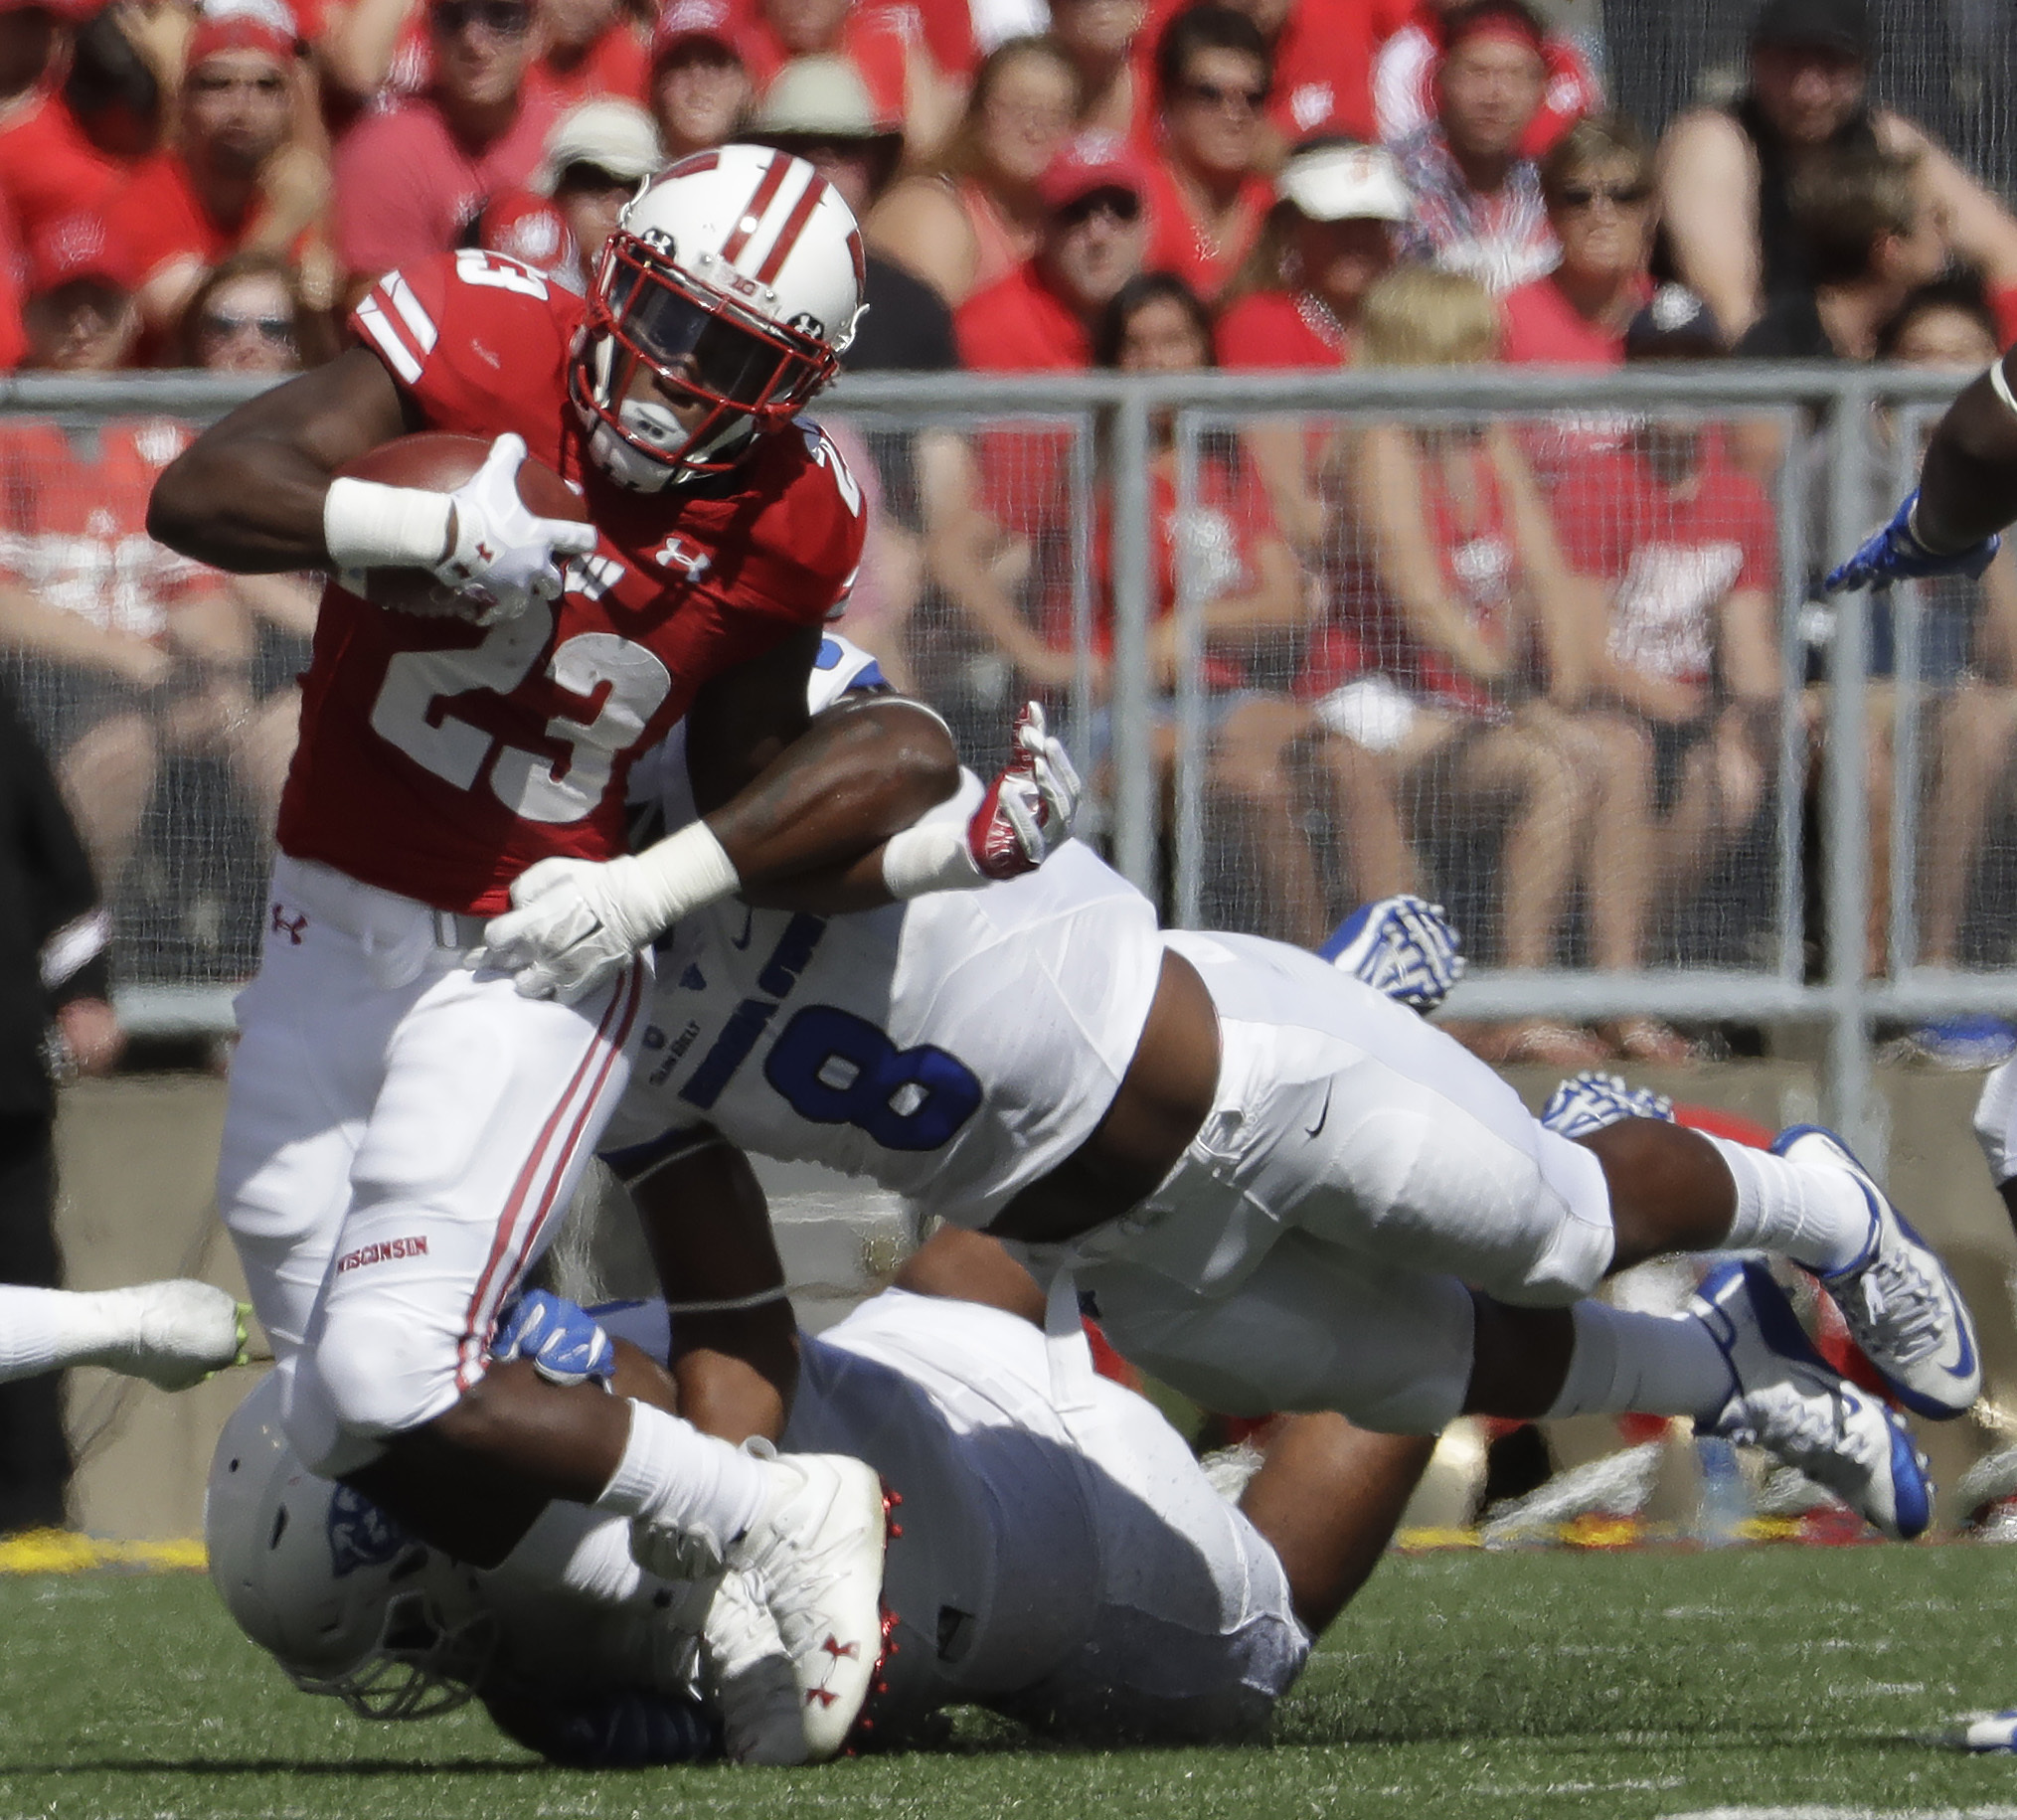 Wisconsin's Dare Ogunbowale runs during the first half of an NCAA college football game against Georgia State Saturday, Sept. 17, 2016, in Madison, Wis. (AP Photo/Morry Gash)